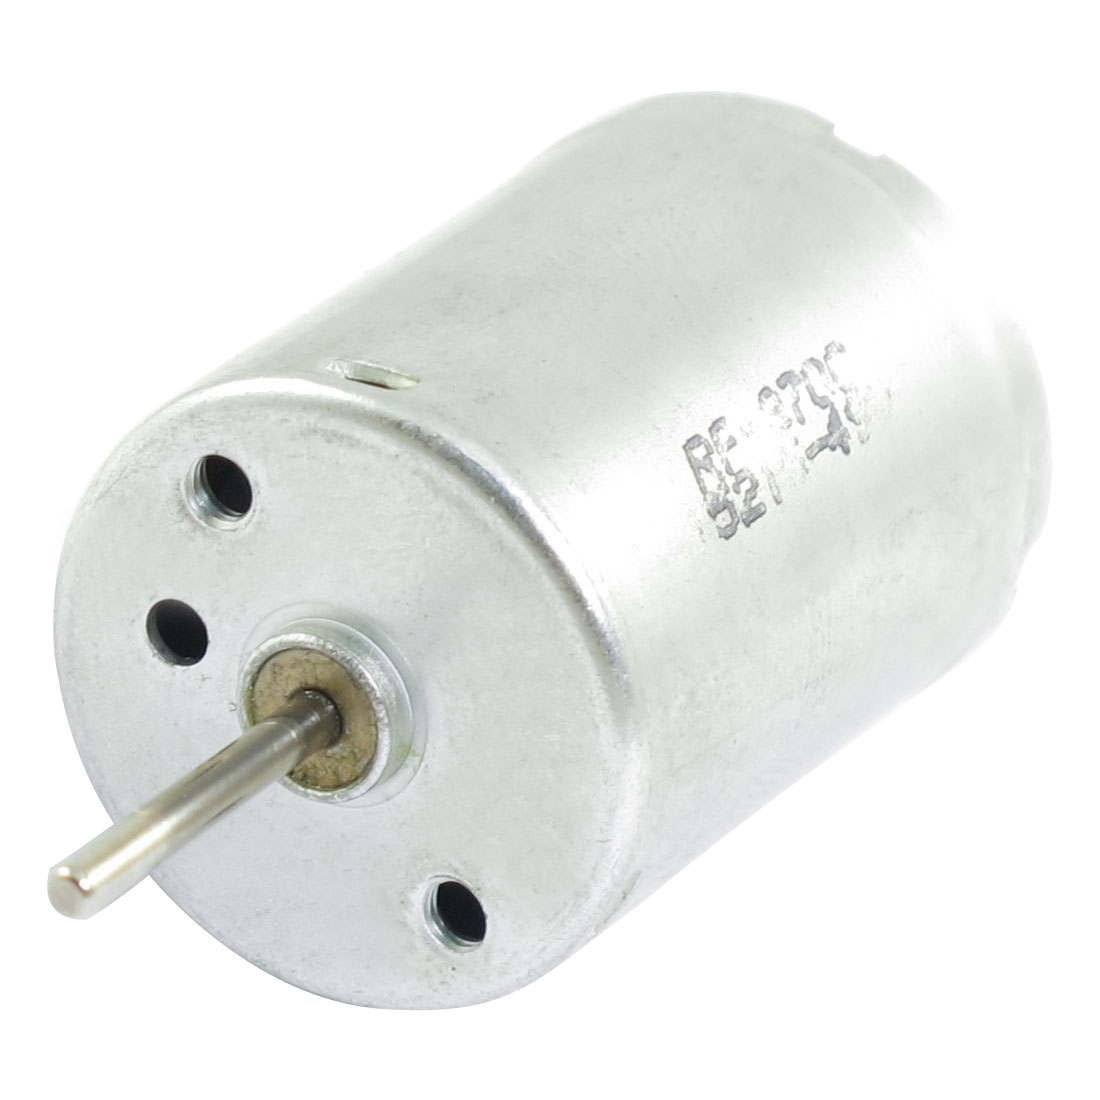 DC 9V 6760RPM Rotary Speed 2 Pin 2P Terminals Electric Mini Motor